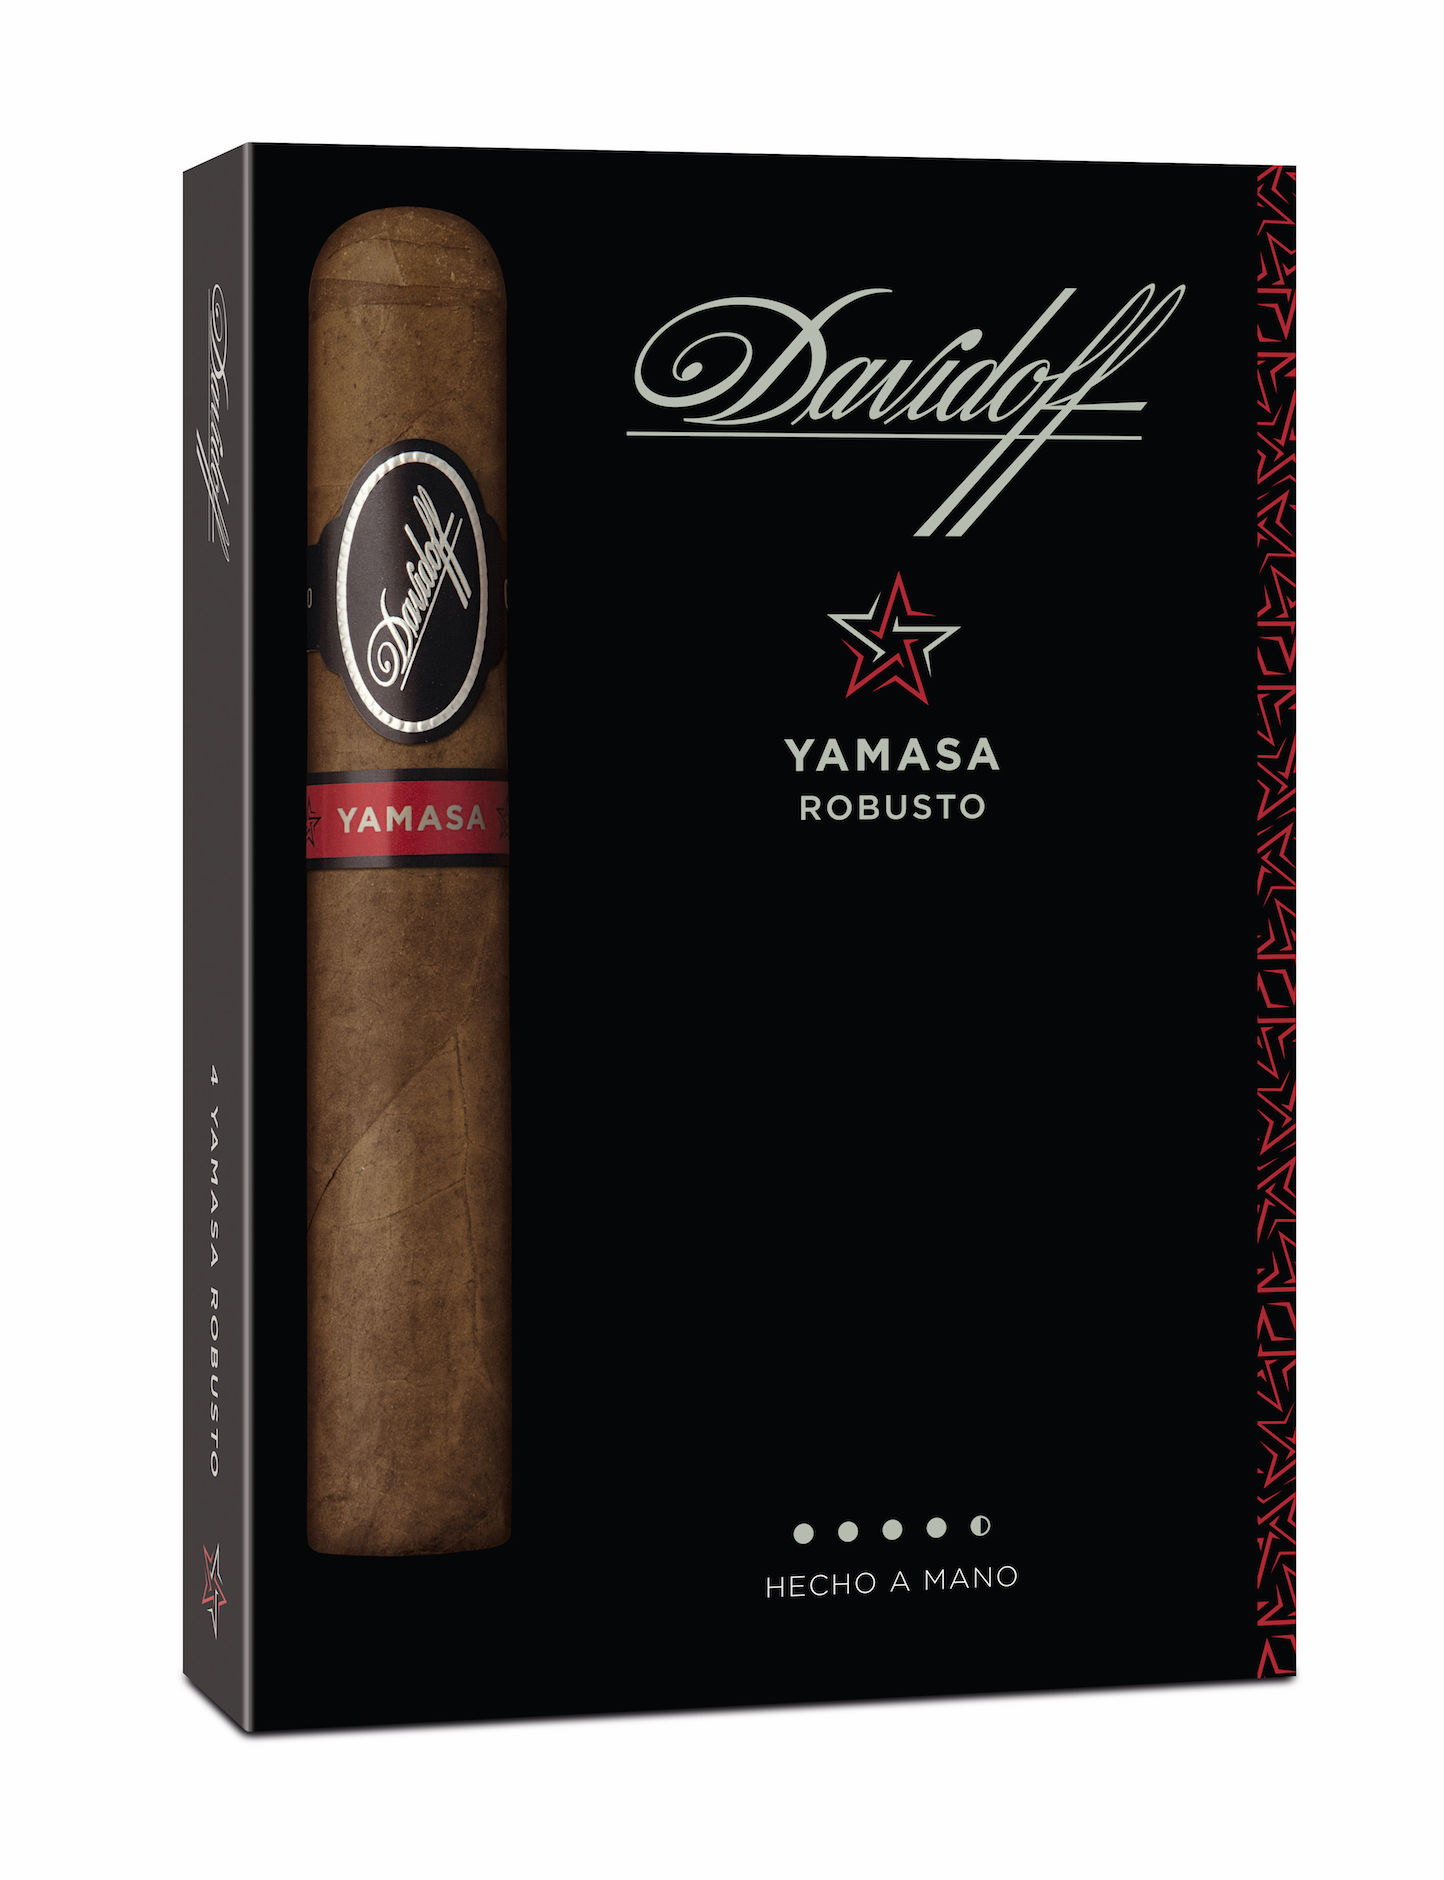 Davidoff Yamasa Robusto Packs